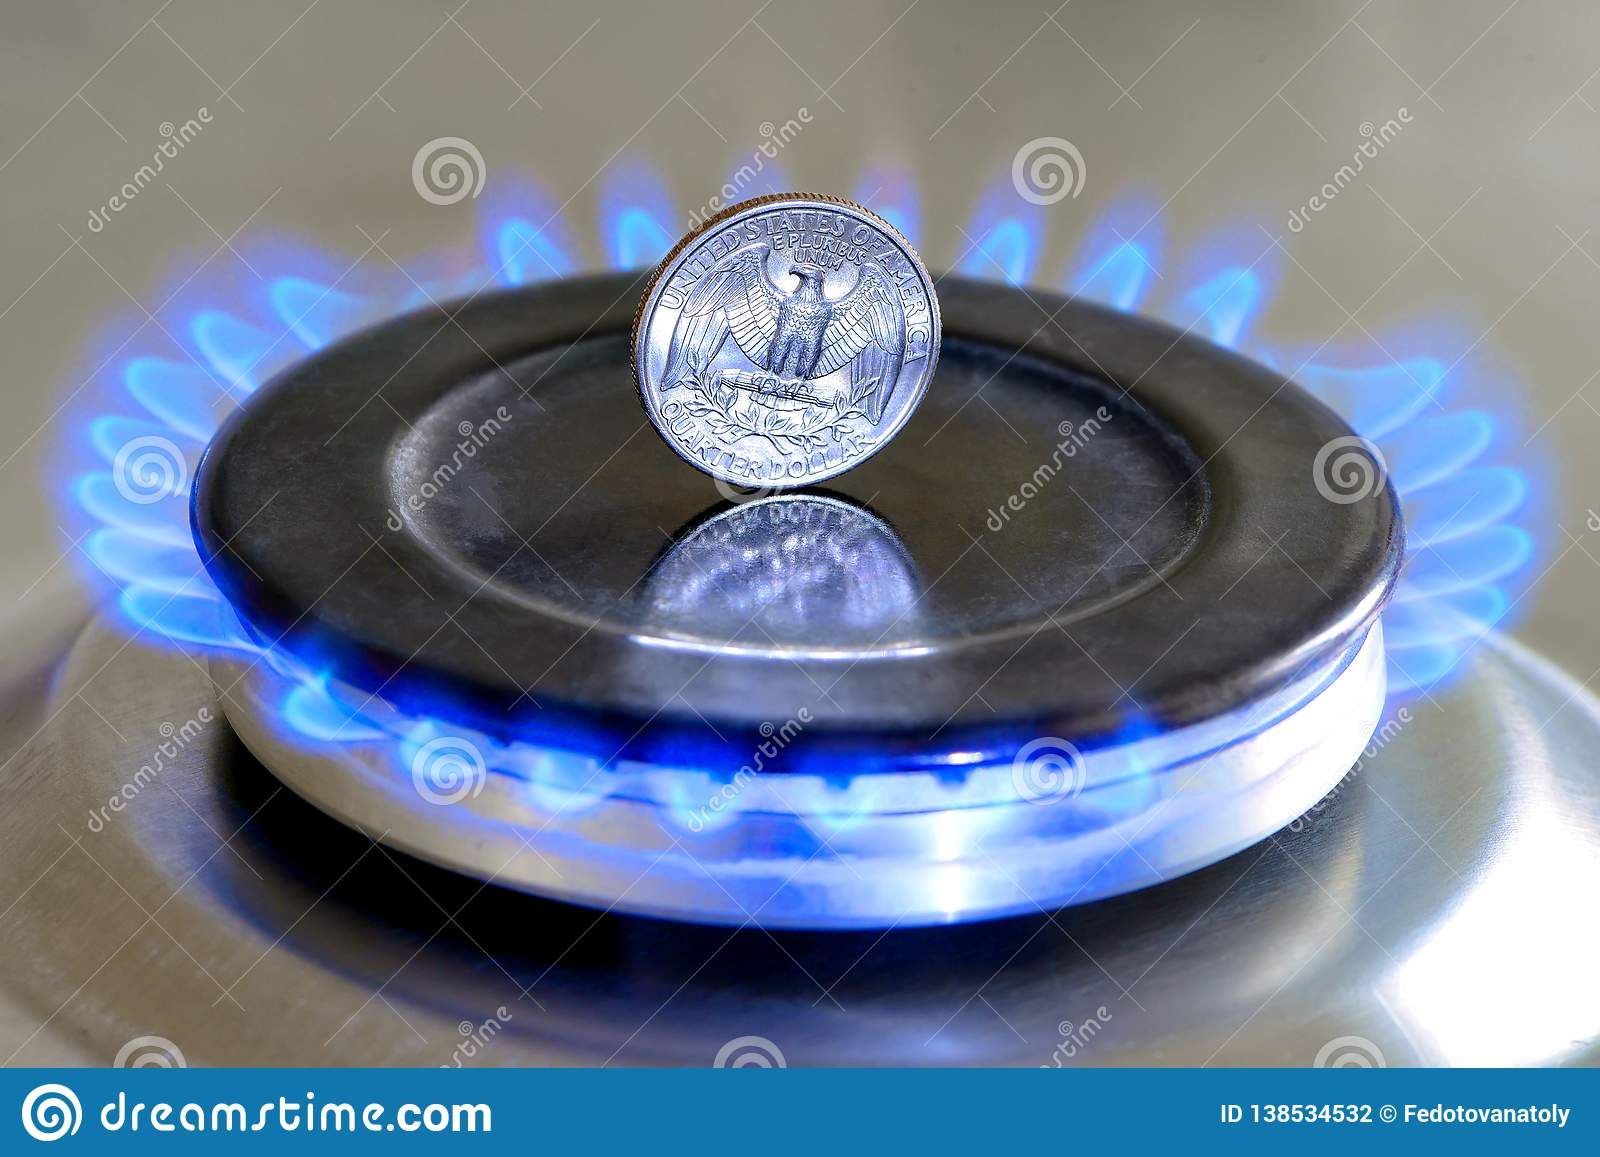 Gas hob with burning natural gas, quarter US dollar coin